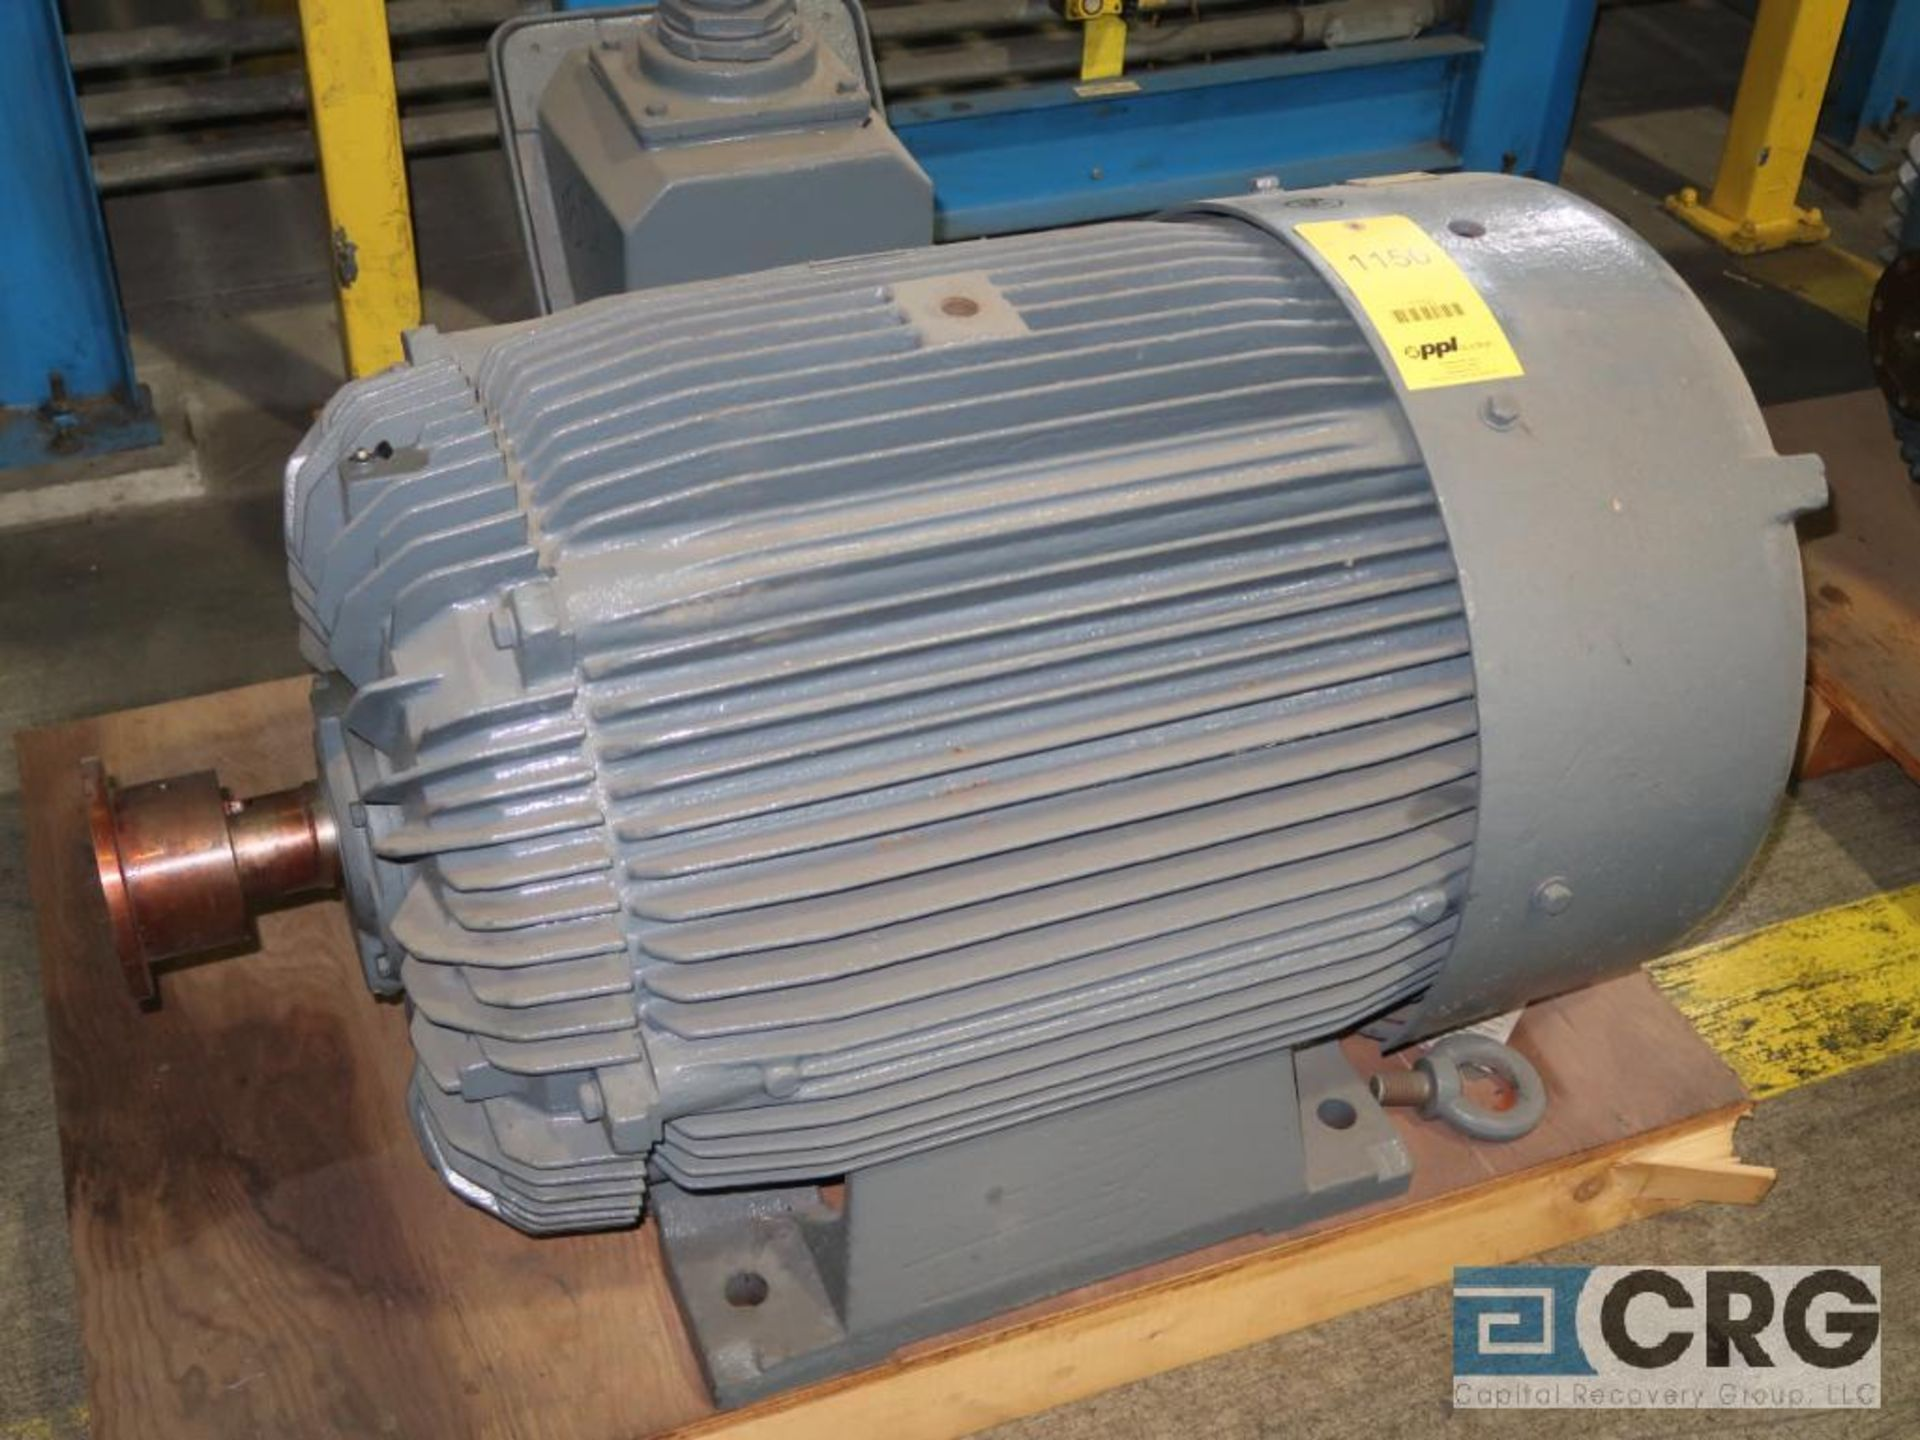 Teco-Electric induction motor, 150 HP, 3,555 RPMs, 460 volt, 3 ph., 445 TS frame (Finish Building)